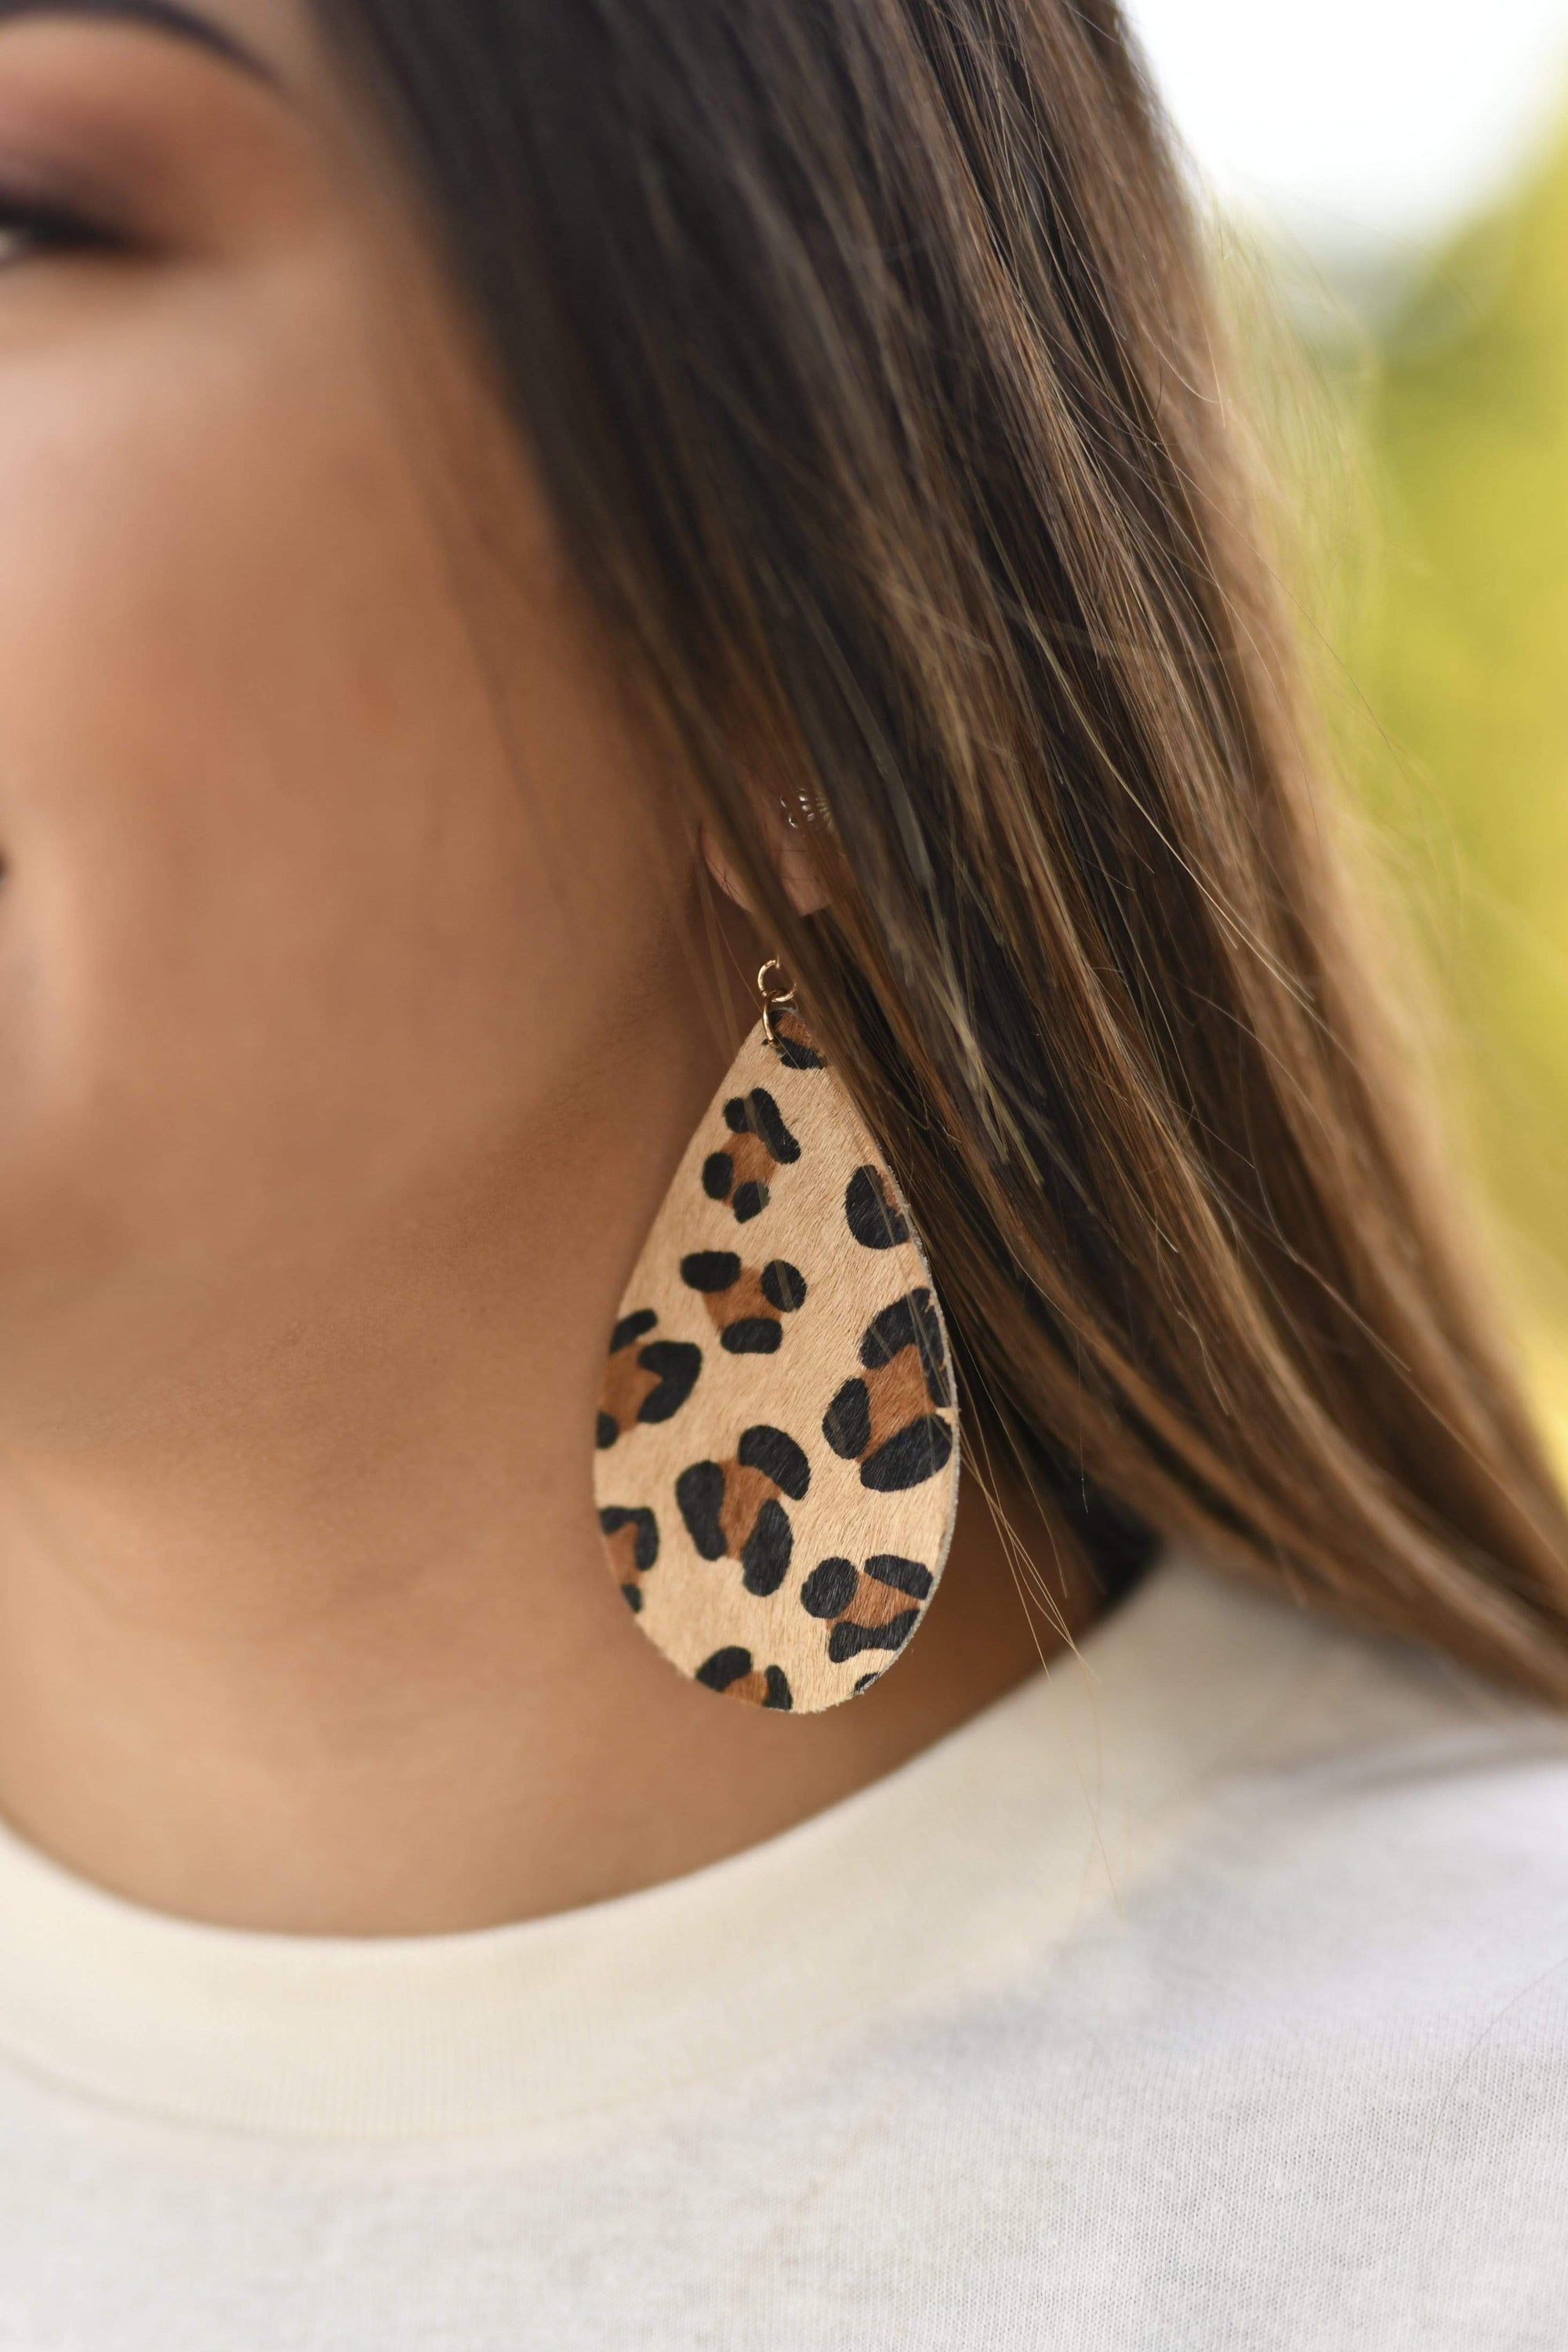 Accessorize In Style Fashion Earrings Leopard Hair on Hide Teardrop Earrings